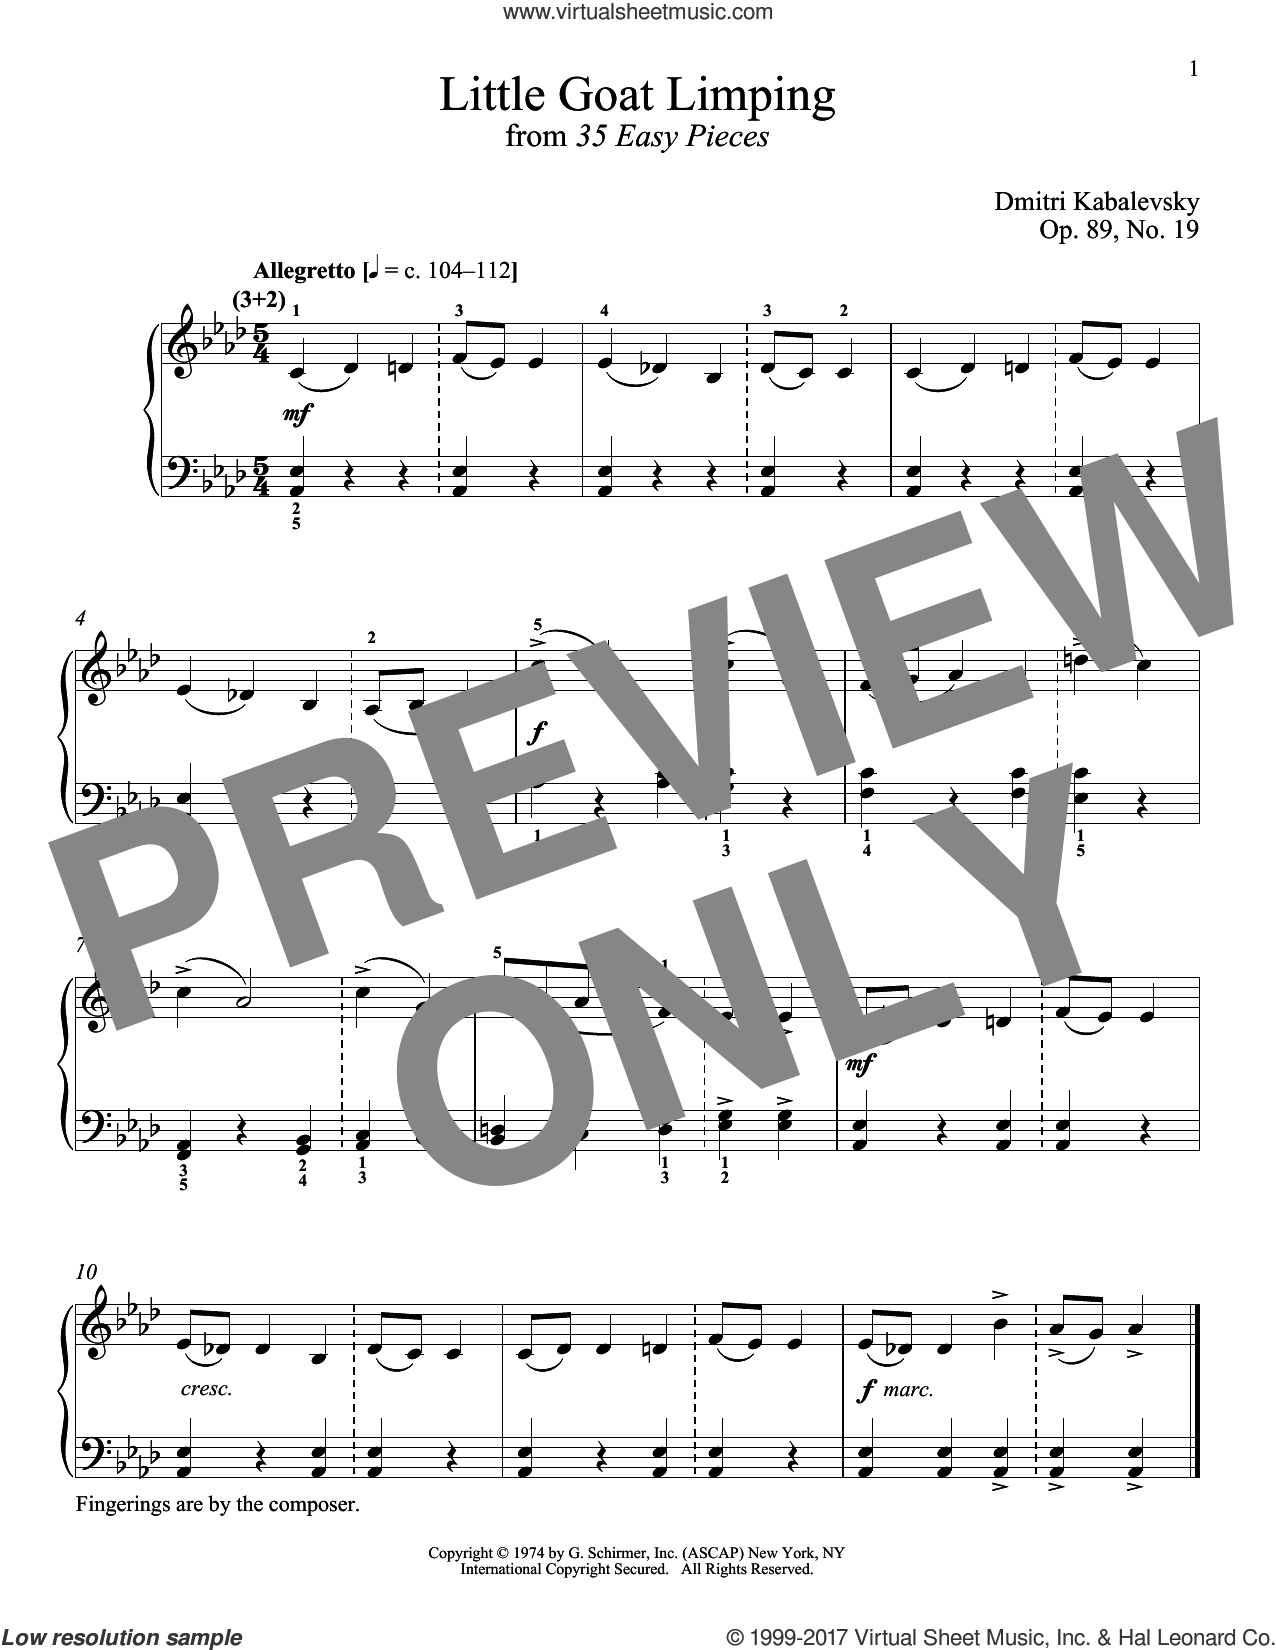 The Little Goat Limping, Op. 89, No. 19 sheet music for piano solo by Dmitri Kabalevsky and Richard Walters, classical score, intermediate skill level